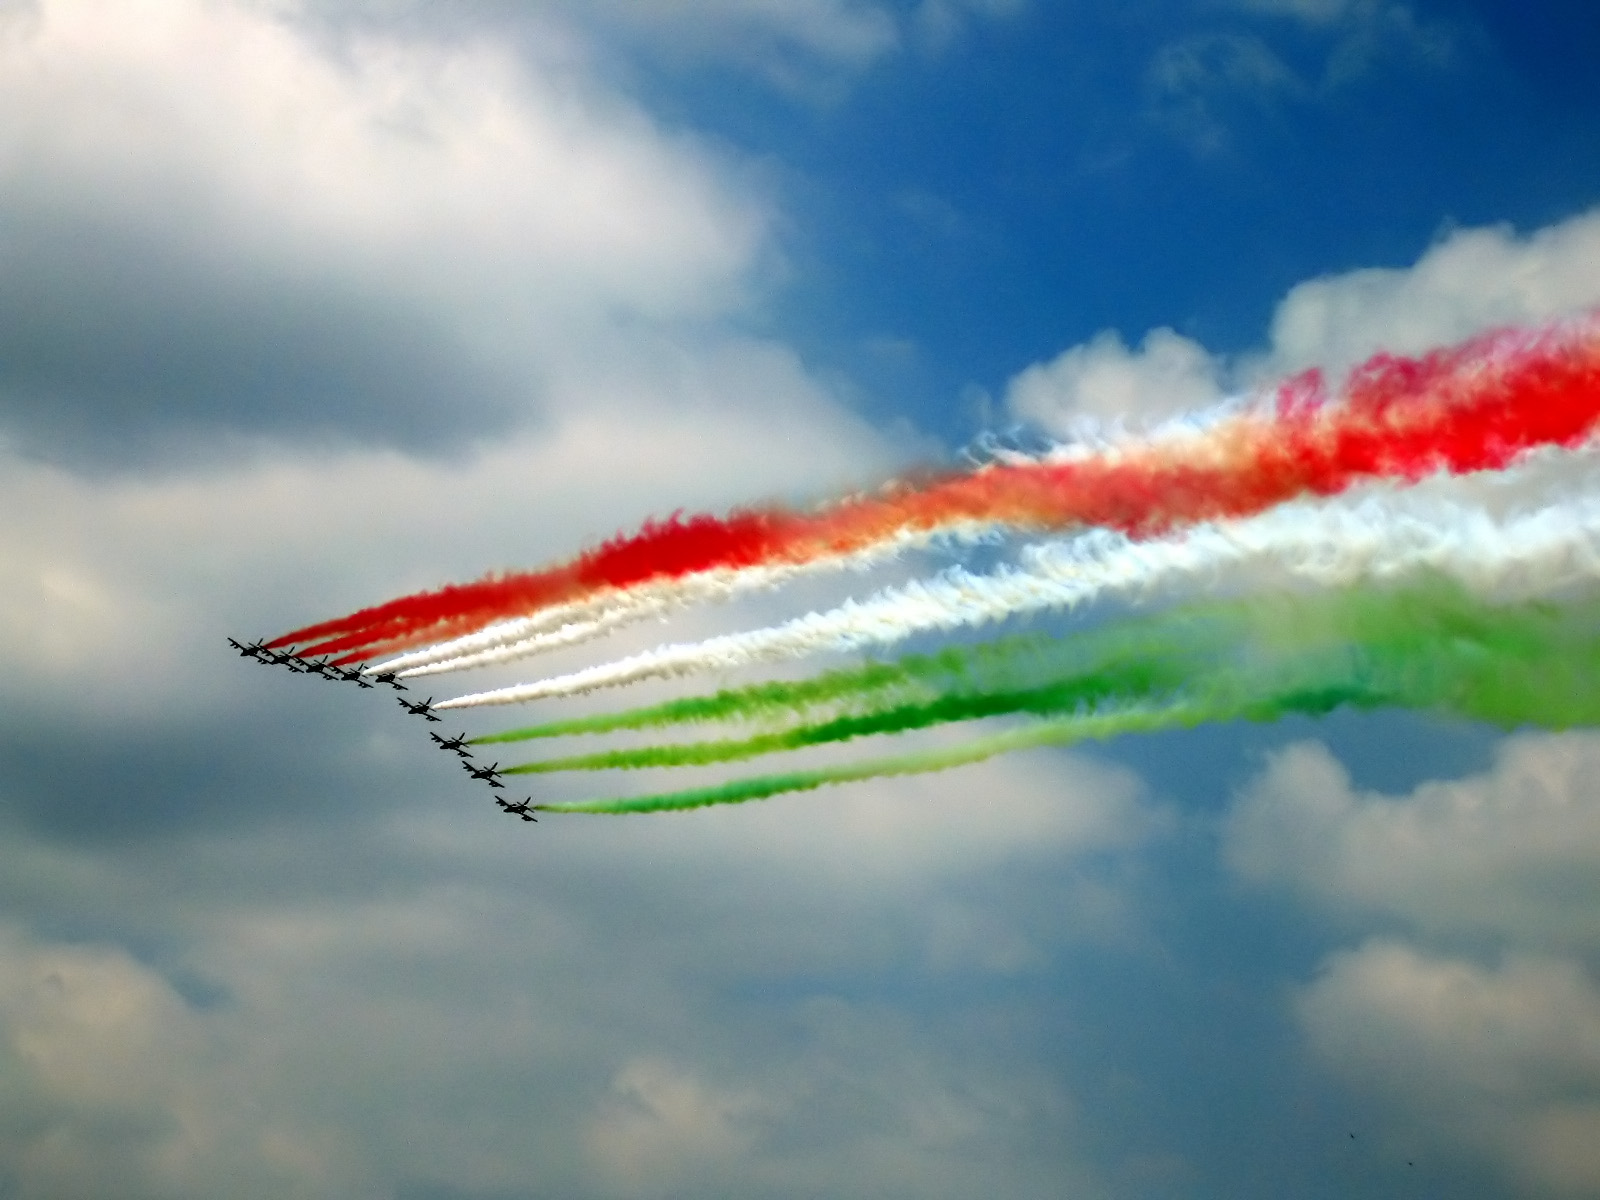 http://4.bp.blogspot.com/-ki_TA_18Mew/Tx6UnTNMzkI/AAAAAAAAD74/YUm7BEWUe7Y/s1600/Happy-Indian-Republic-Day-Wallpapers-30.jpg